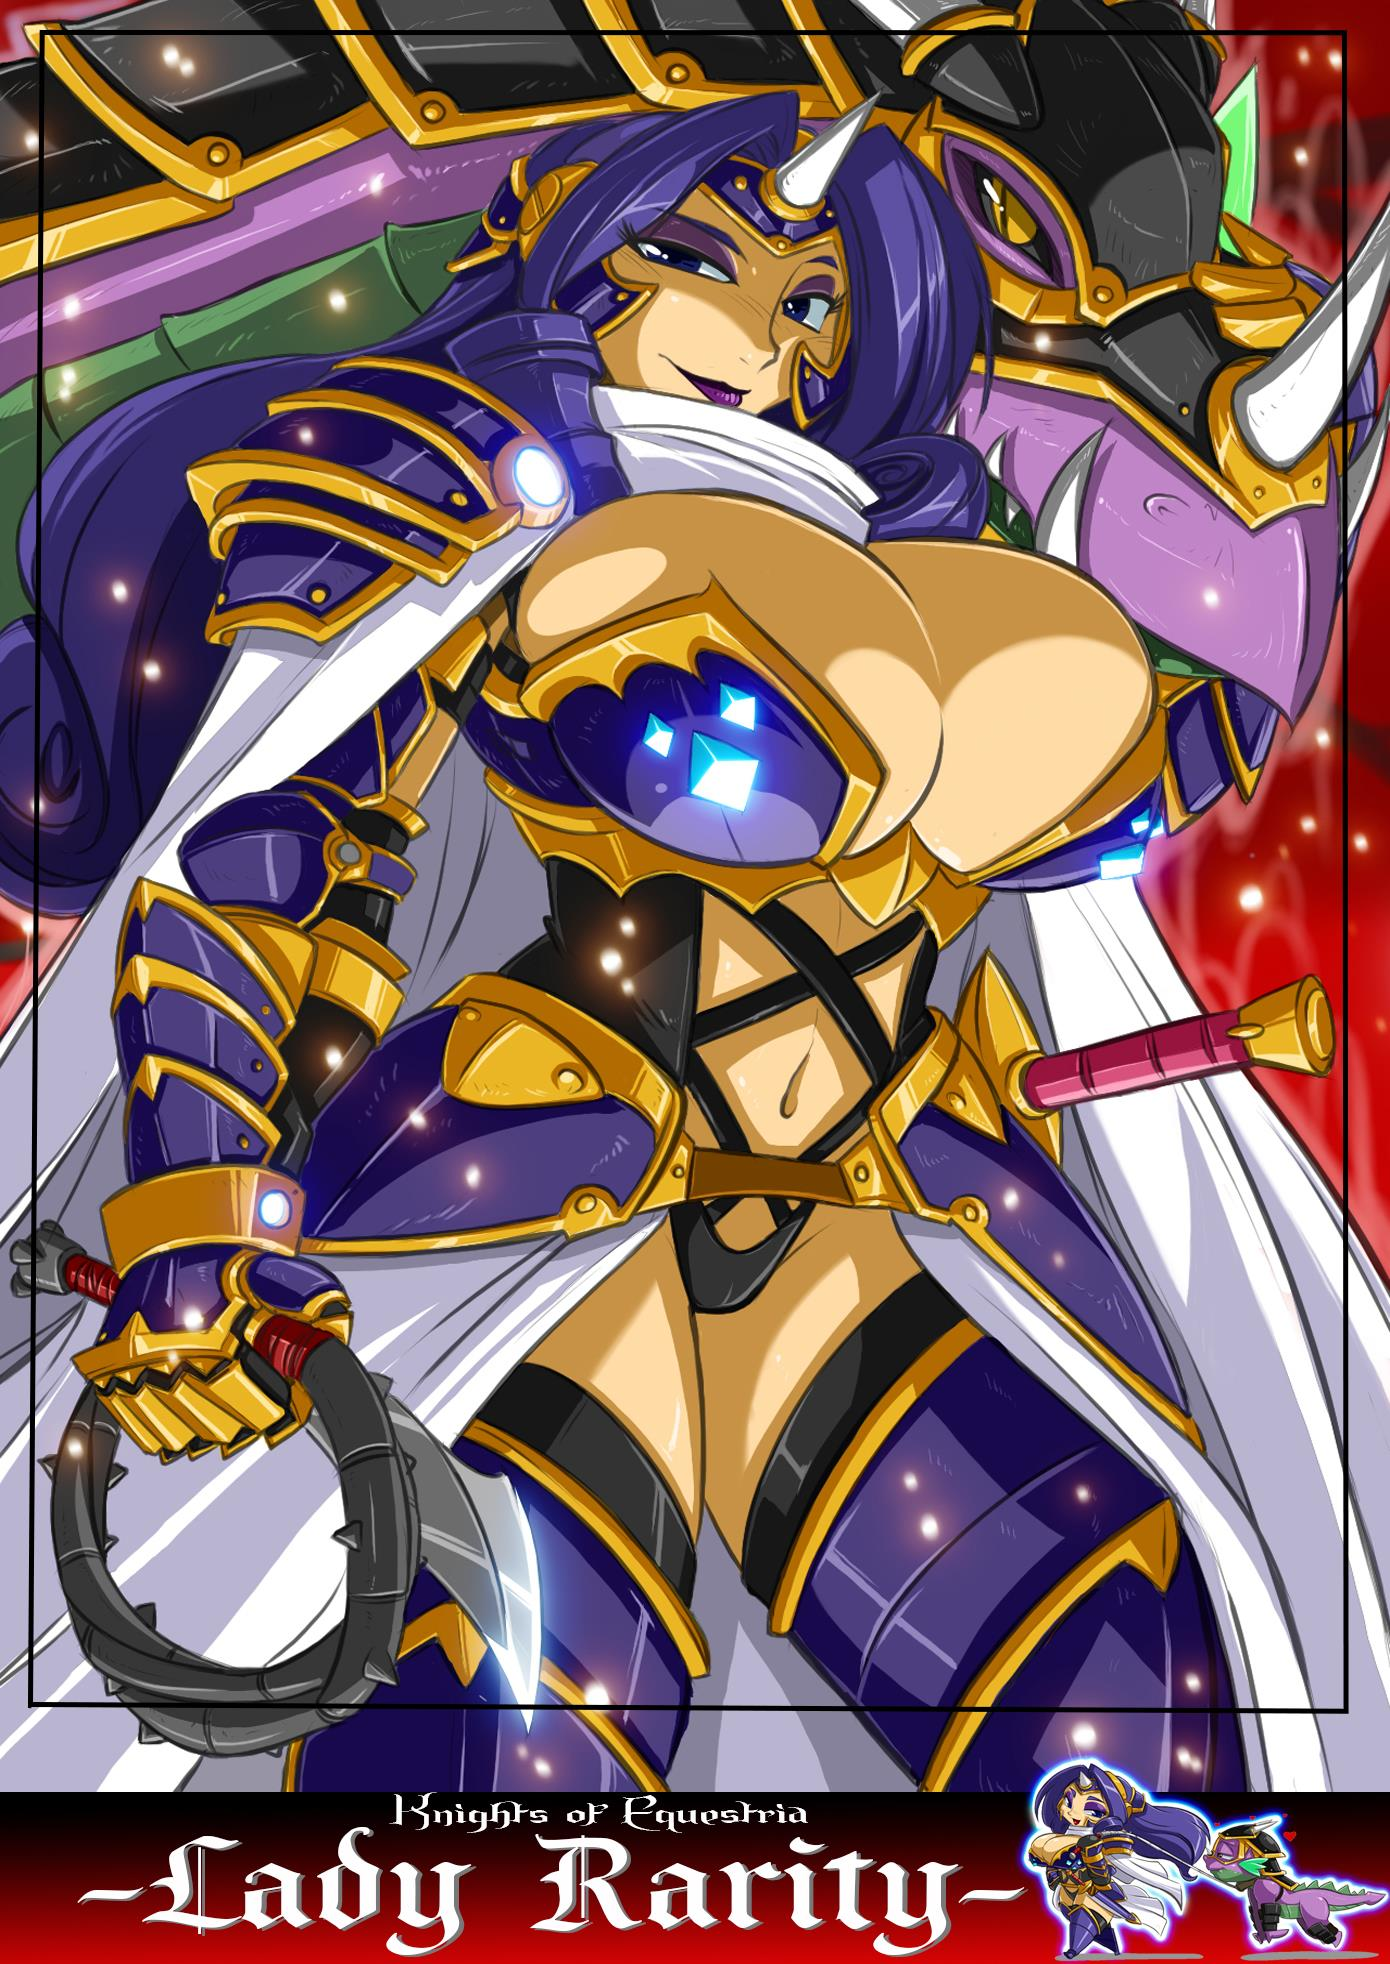 armor breasts huge_breasts my_little_pony my_little_pony_friendship_is_magic personification purple_hair rarity shonuff44 whip